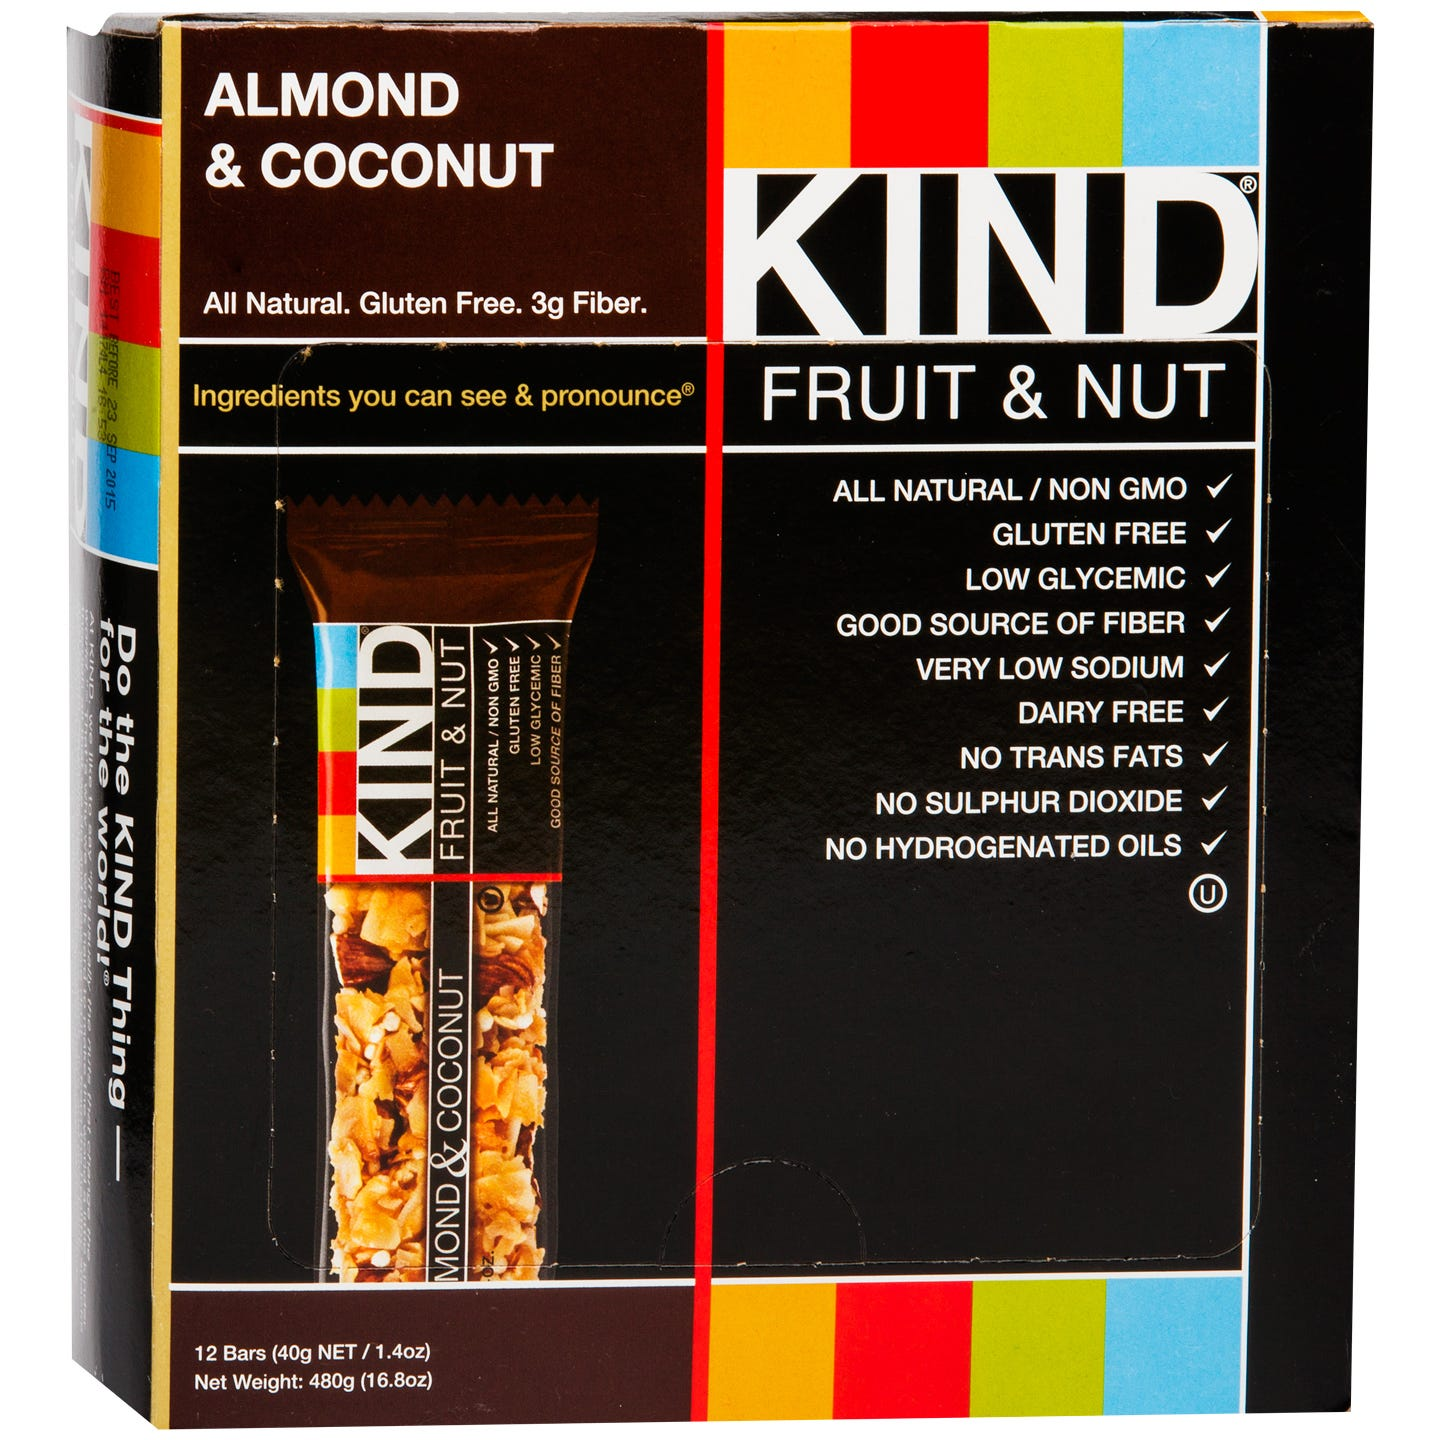 Kind Fruit & Nut Bar Almond & Coconut (12 ct) - Rapid Diet Weight Loss Products Shop